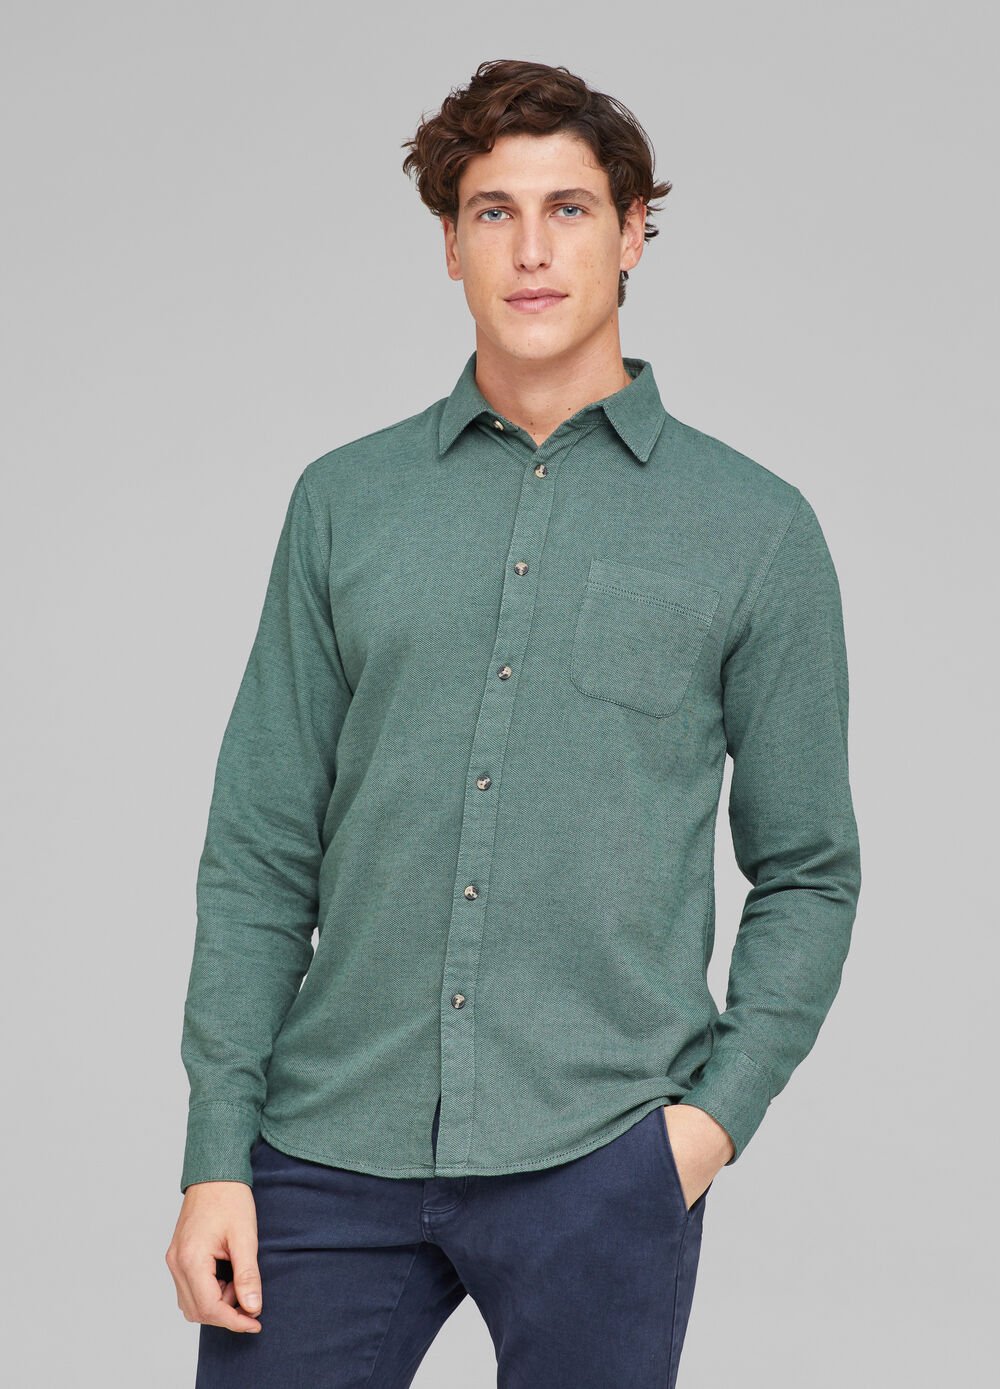 Solid colour shirt with pocket